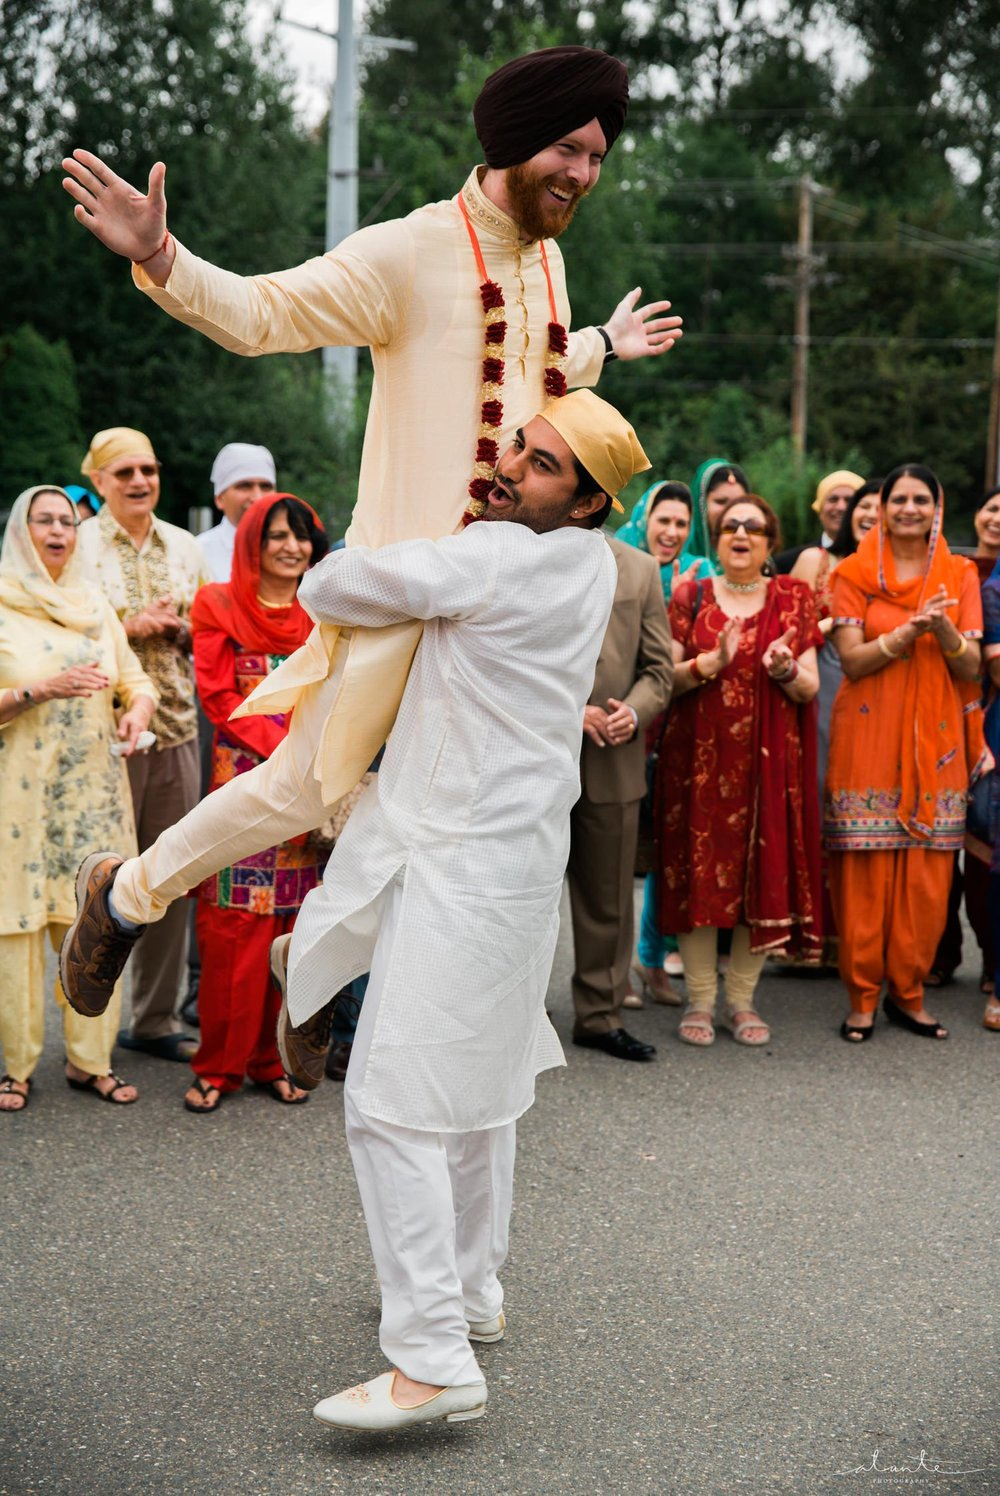 Sikh Indian Wedding Milni Photography by Alante Photography http://www.alantephotography.com